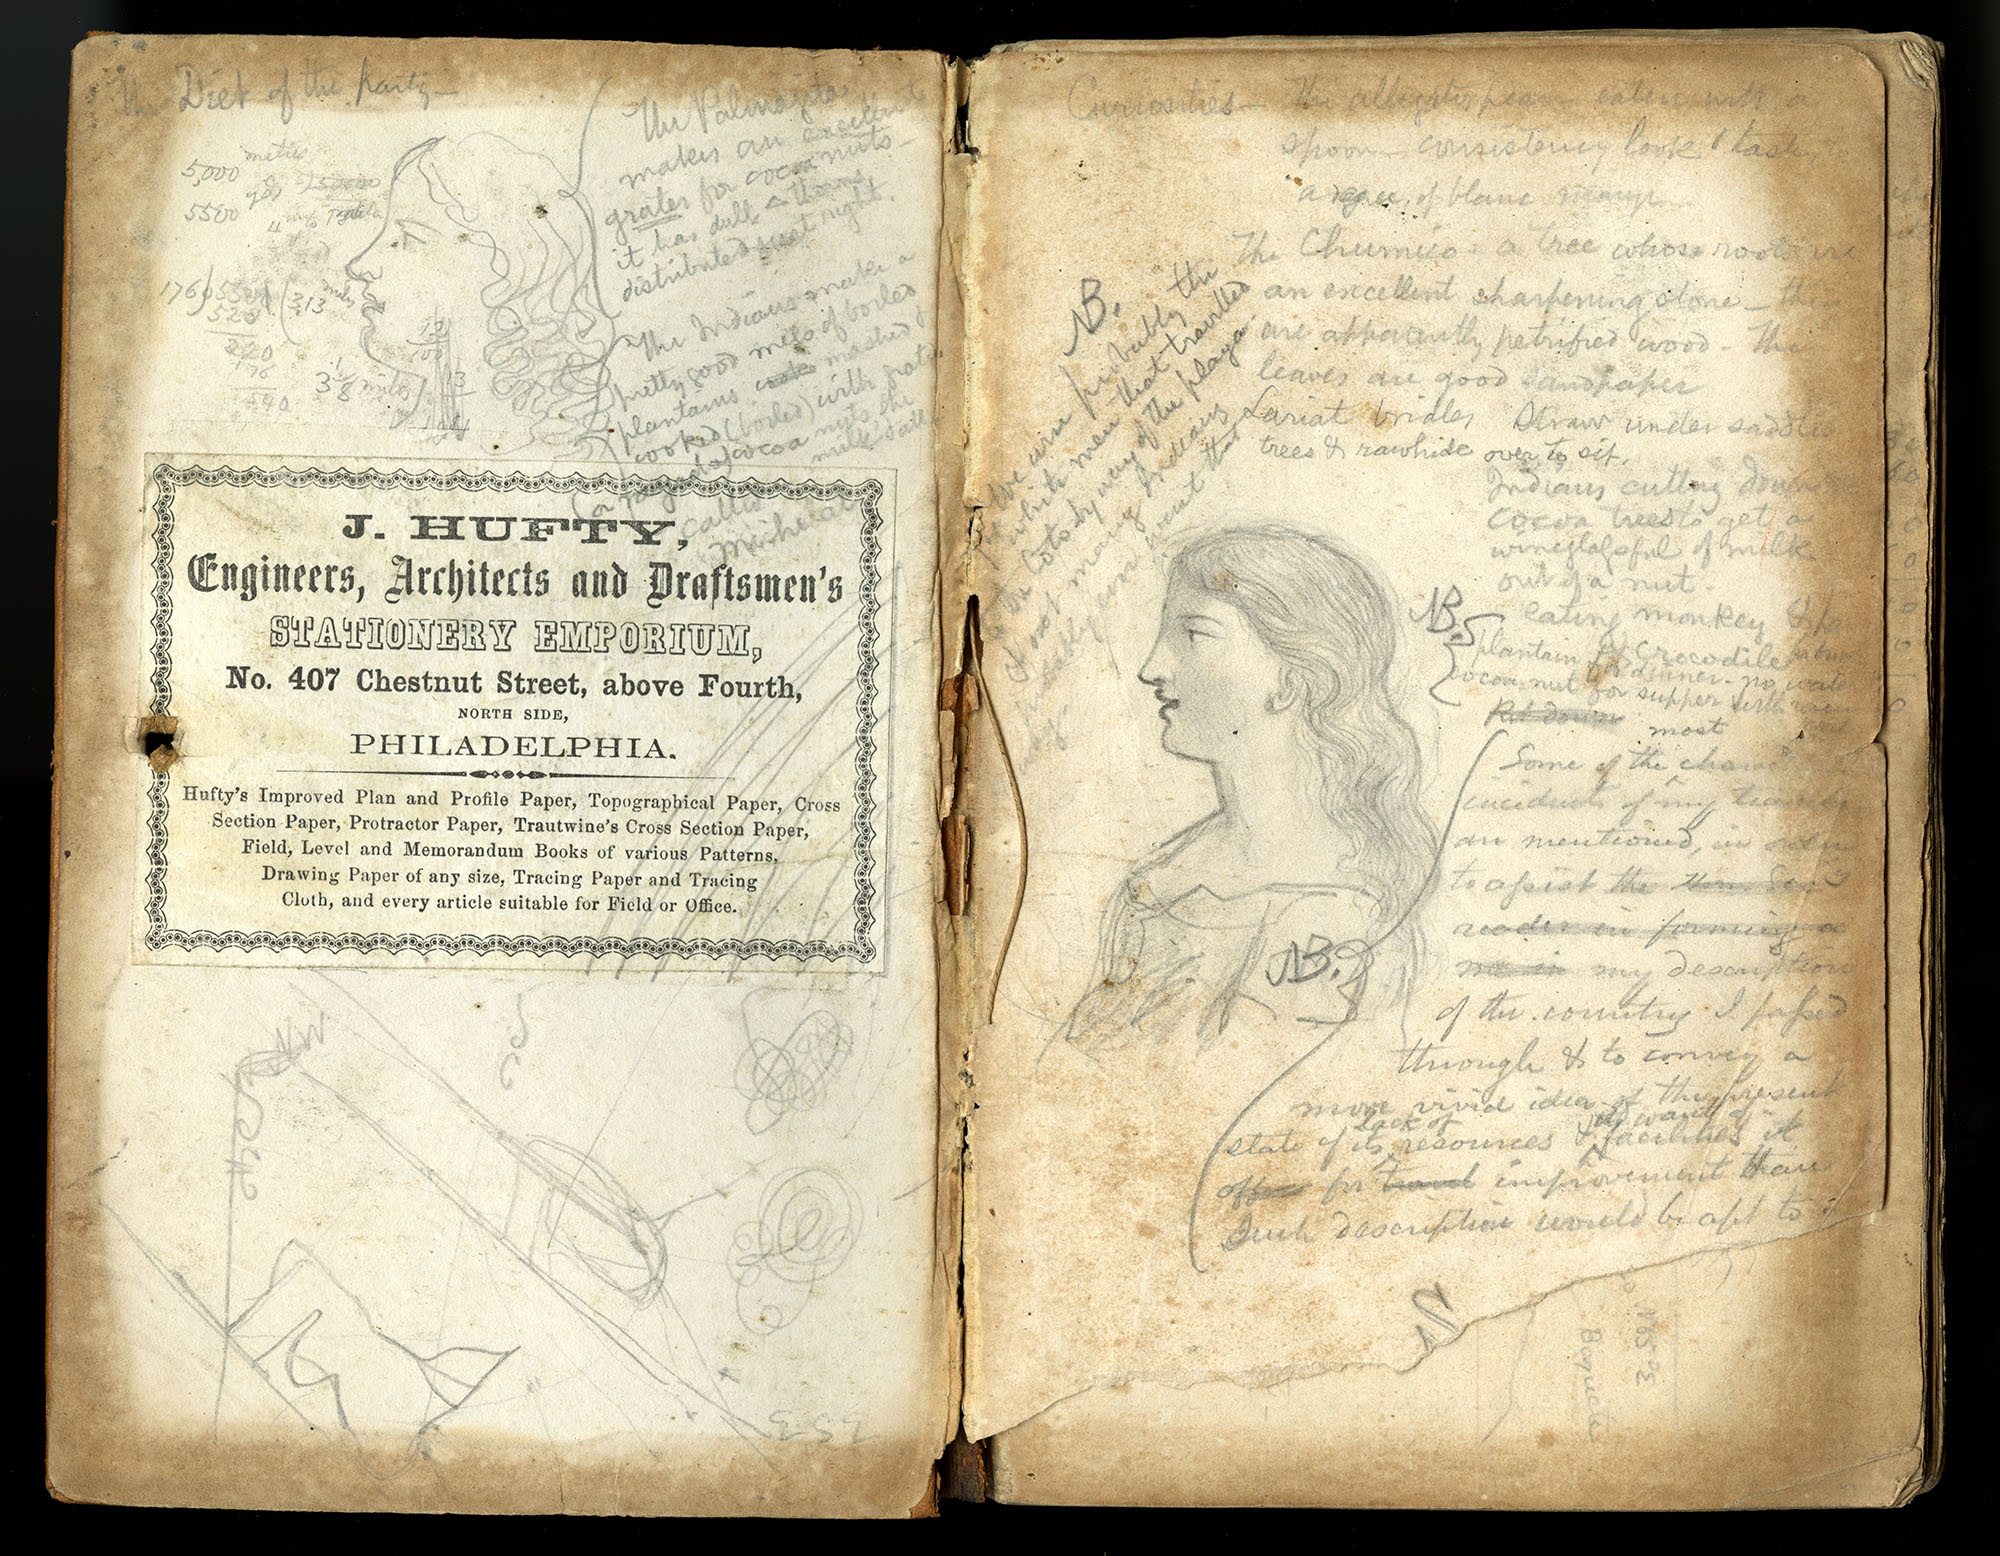 Blank book used by James St. Clair Morton for field notes and sketches for the Chiriqui Surveying Party, 1860. Published by J. Hufty, Philadelphia. Samuel George Morton Papers.